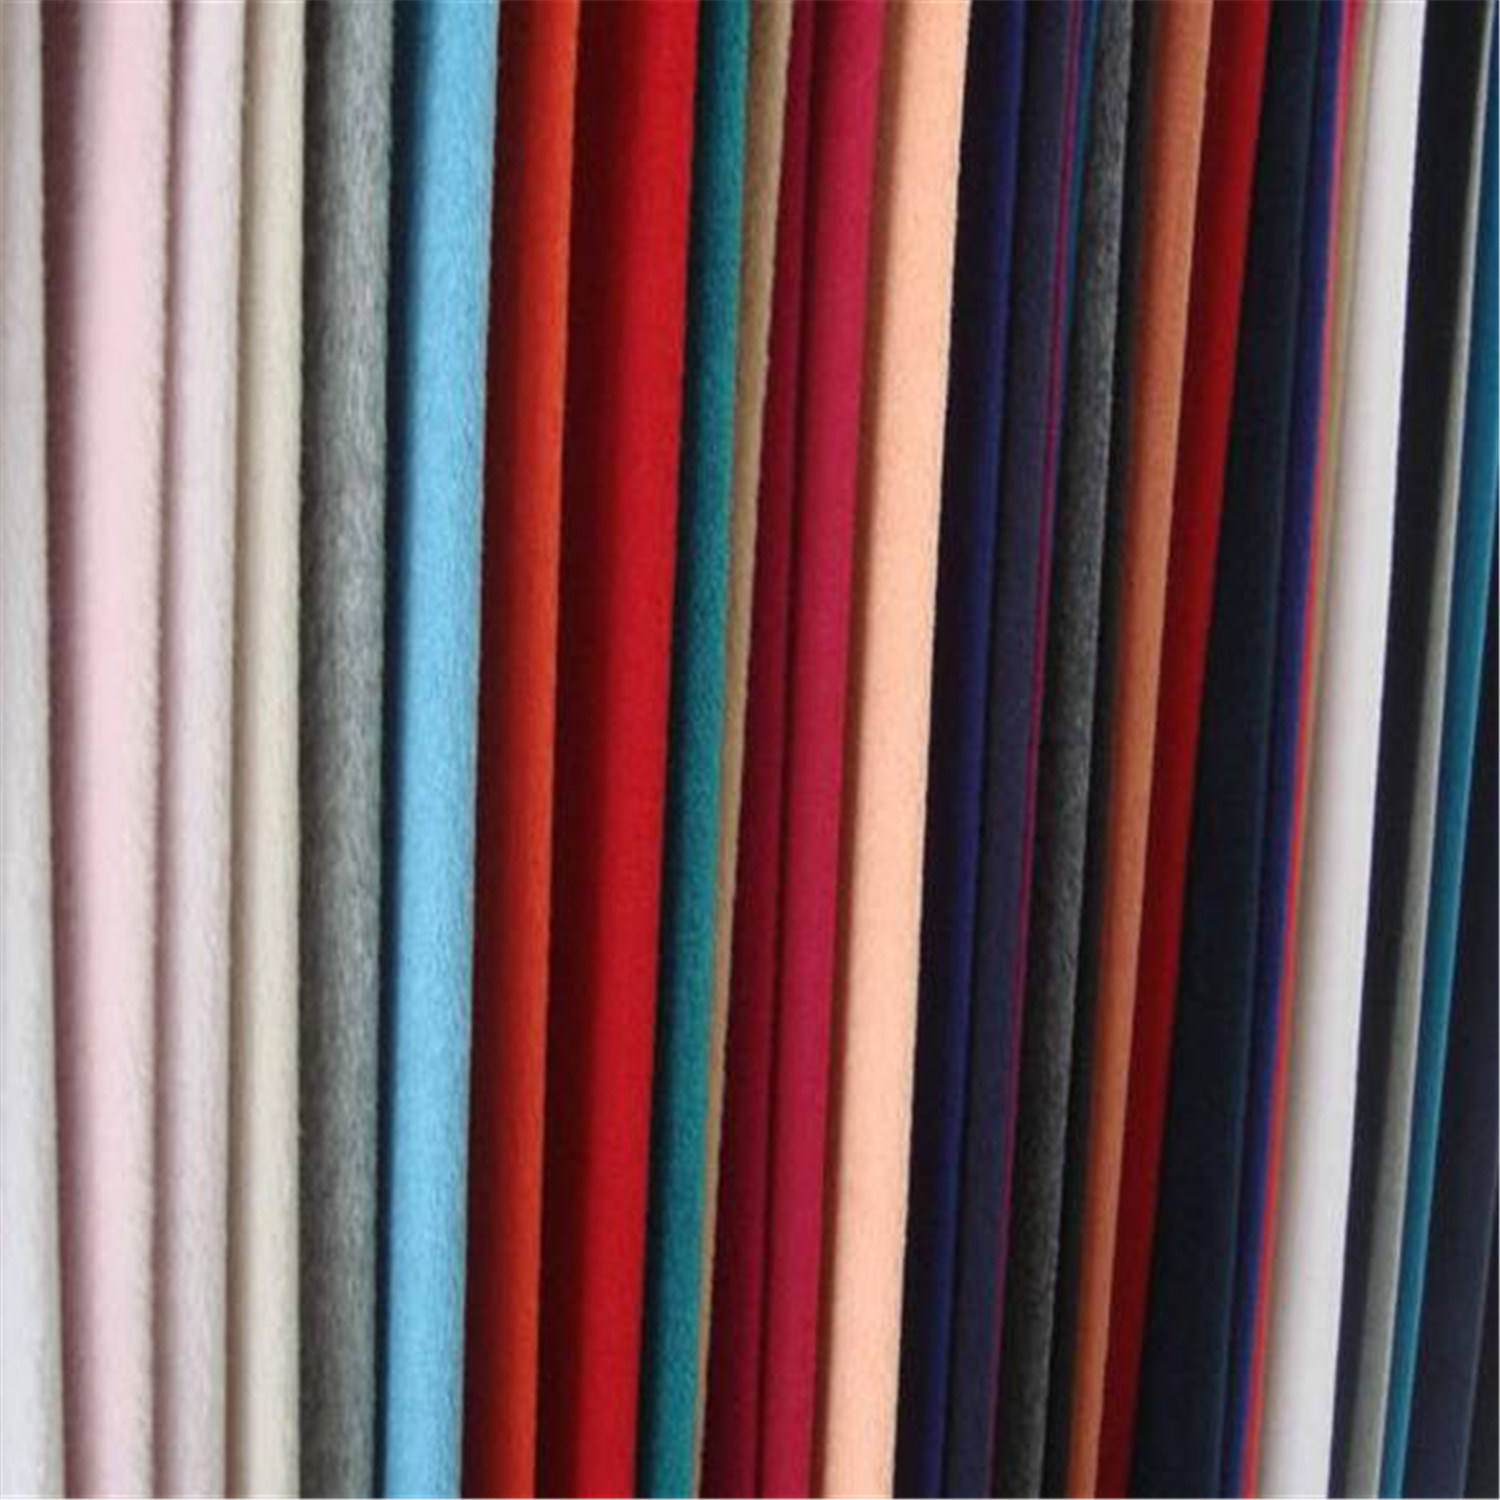 Wool Fabric Woolen Fleece for Clothing, Suit Fabric, Garment Fabric, Textile Fabric